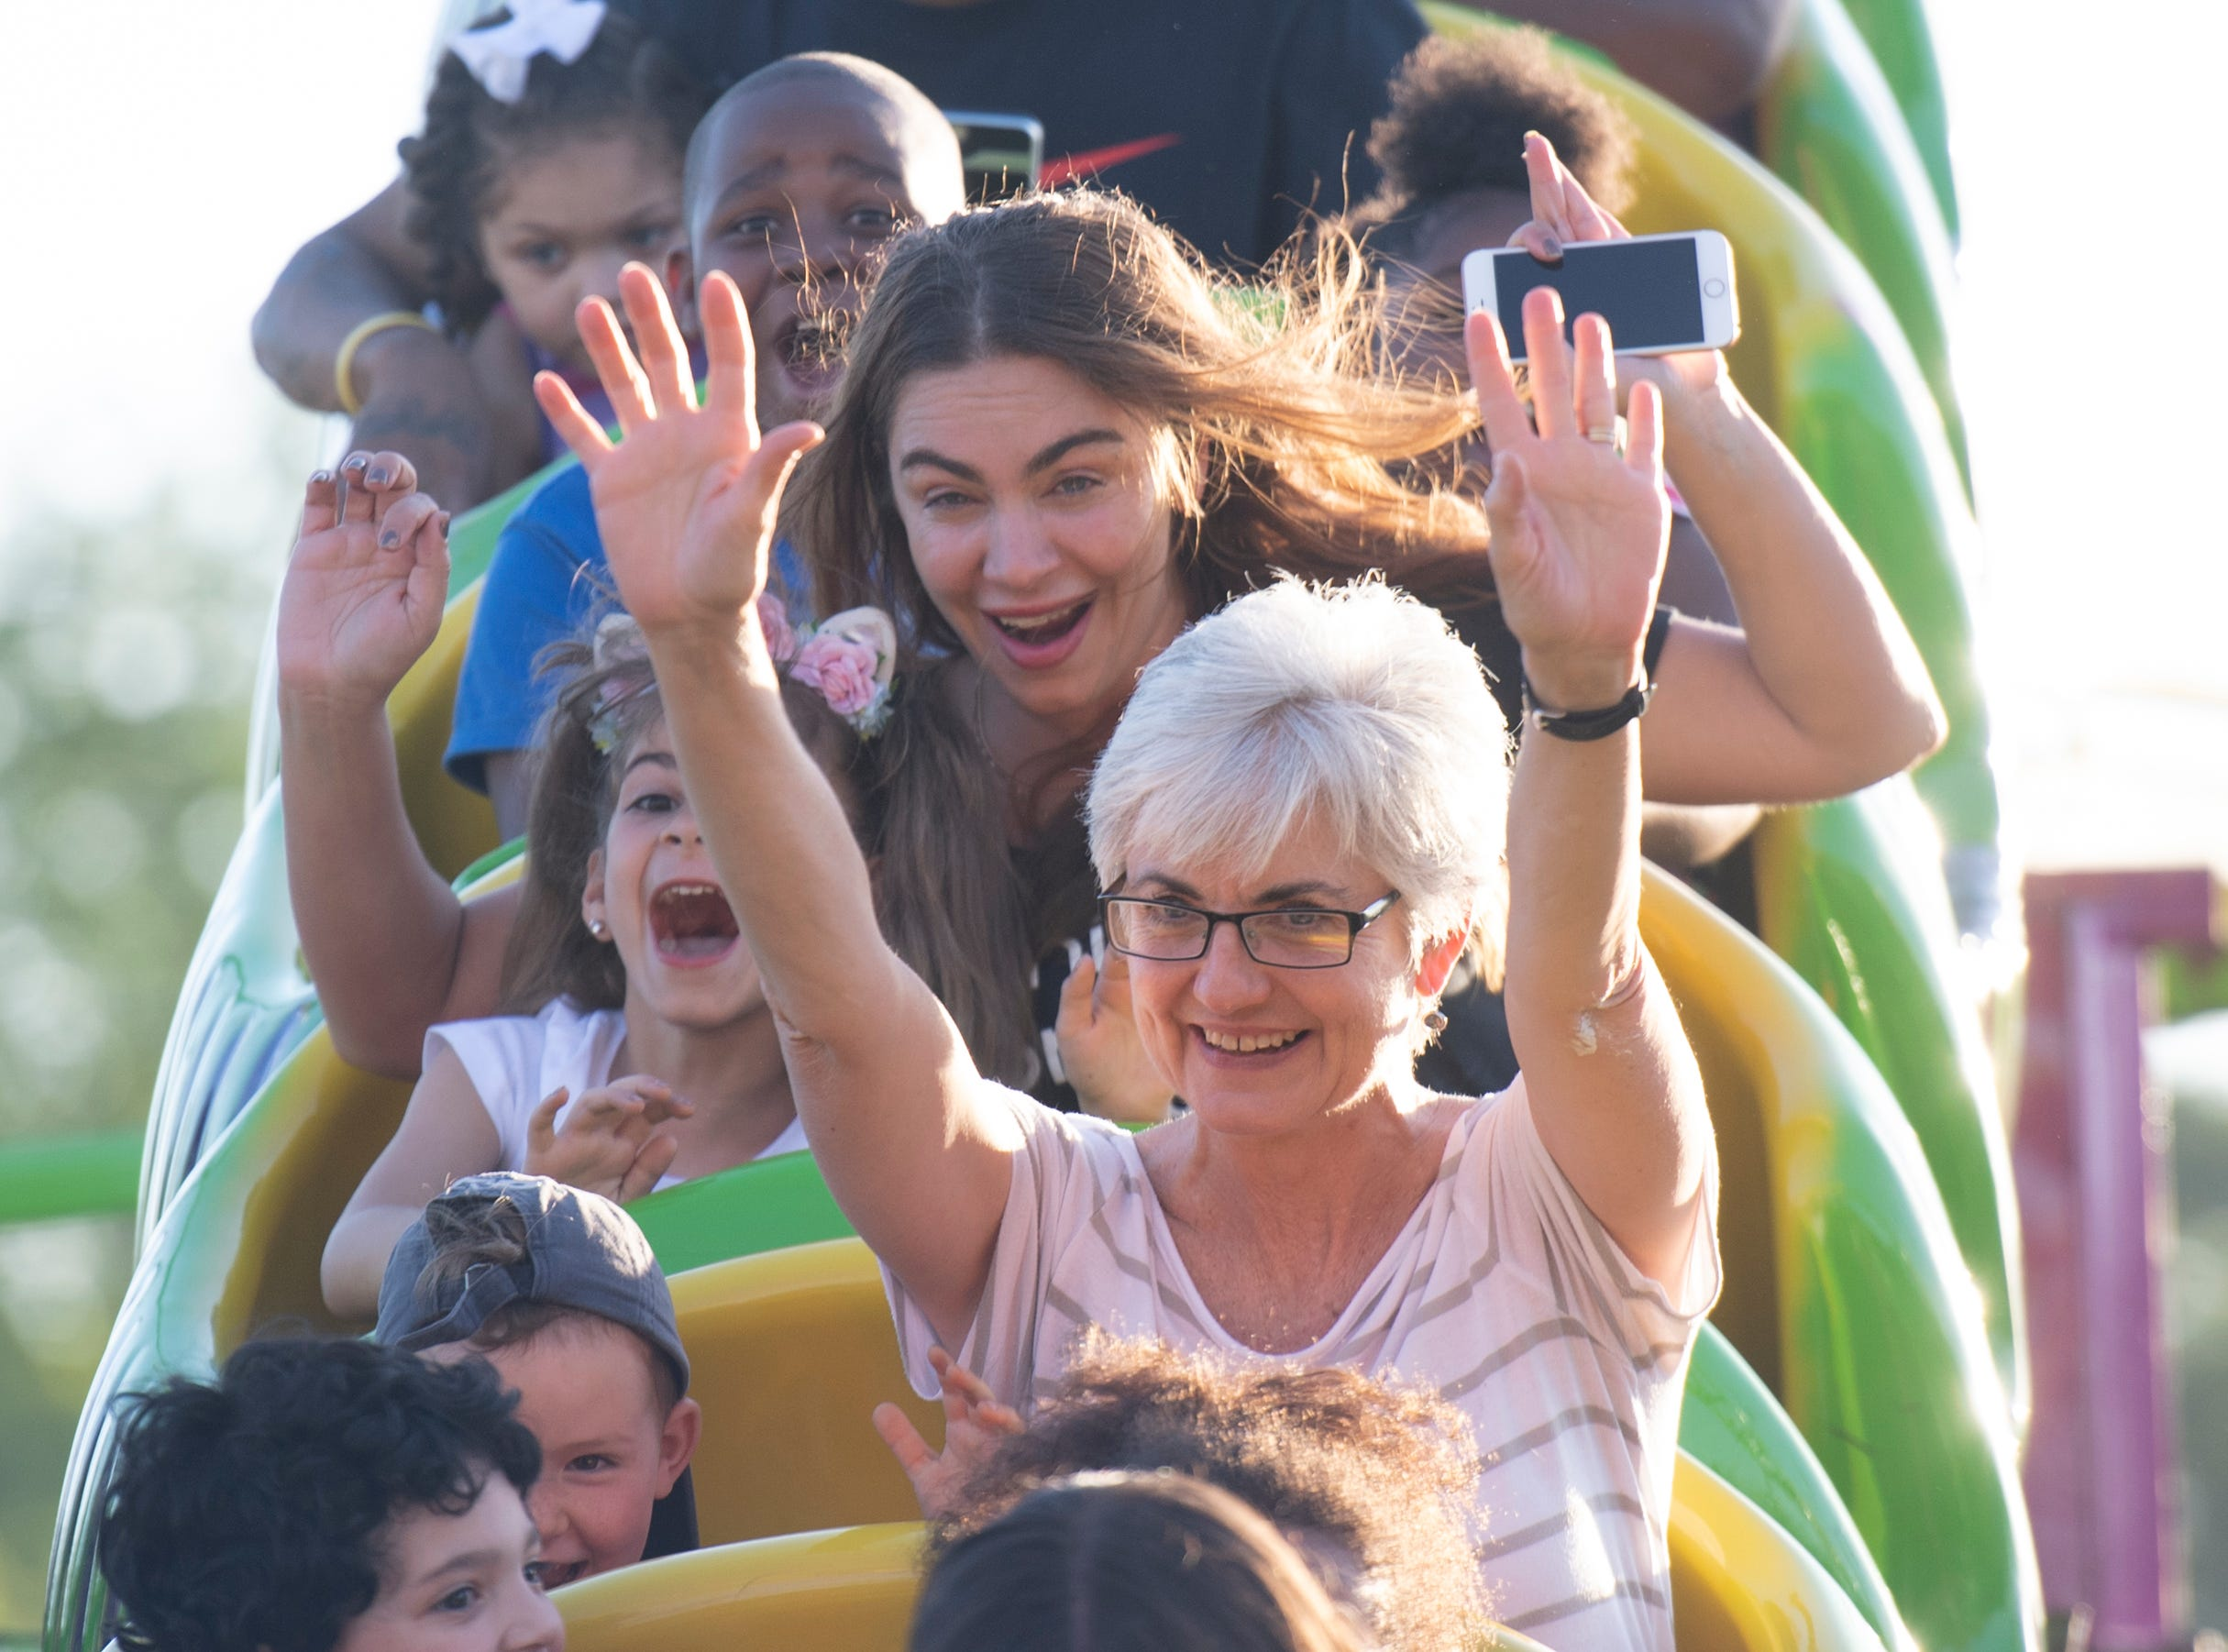 Maria Gil and her daughter Angelina, 6, ride behind Carol Vinzant and her grandson Arol Vedenhaupt, 4, on opening day of The Great Anderson County Fair Thursday, May 2, 2019.